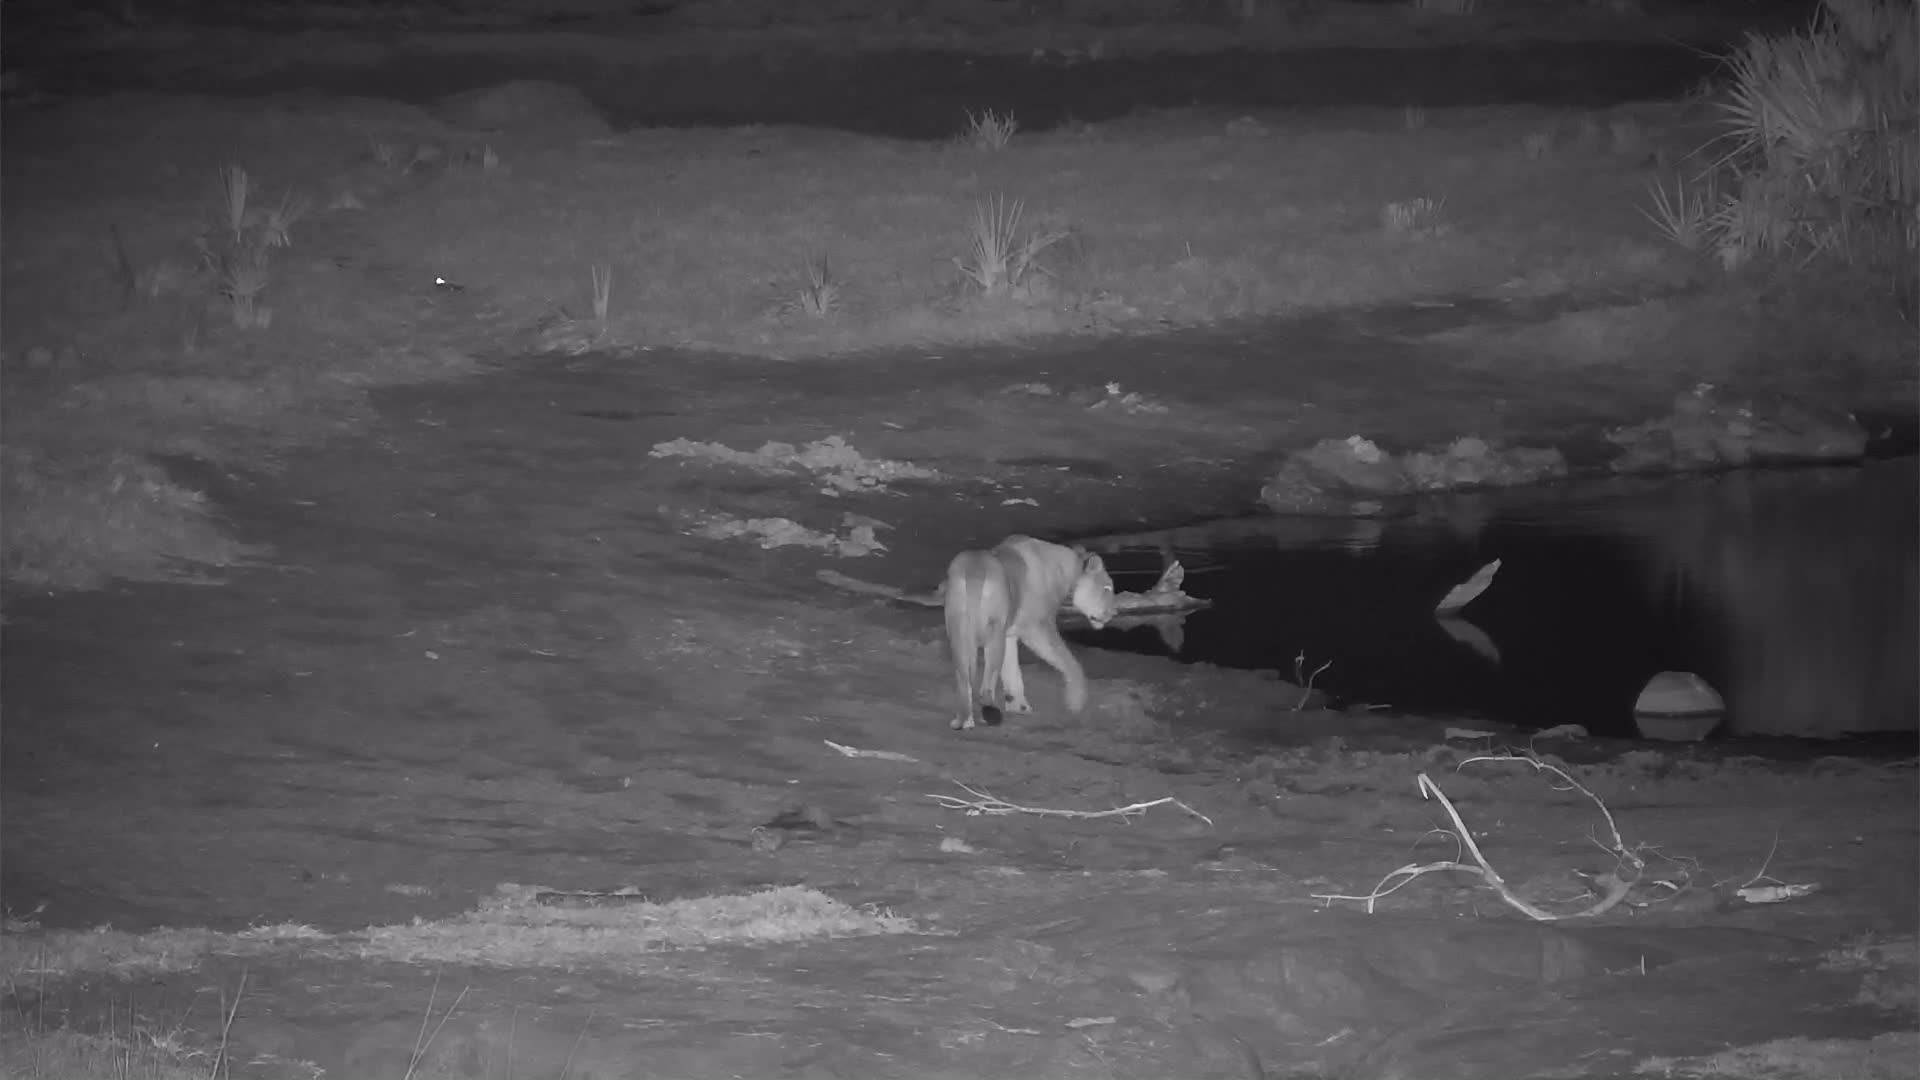 VIDEO: Lioness walks along the shore taking a short drink and goes into the thicket